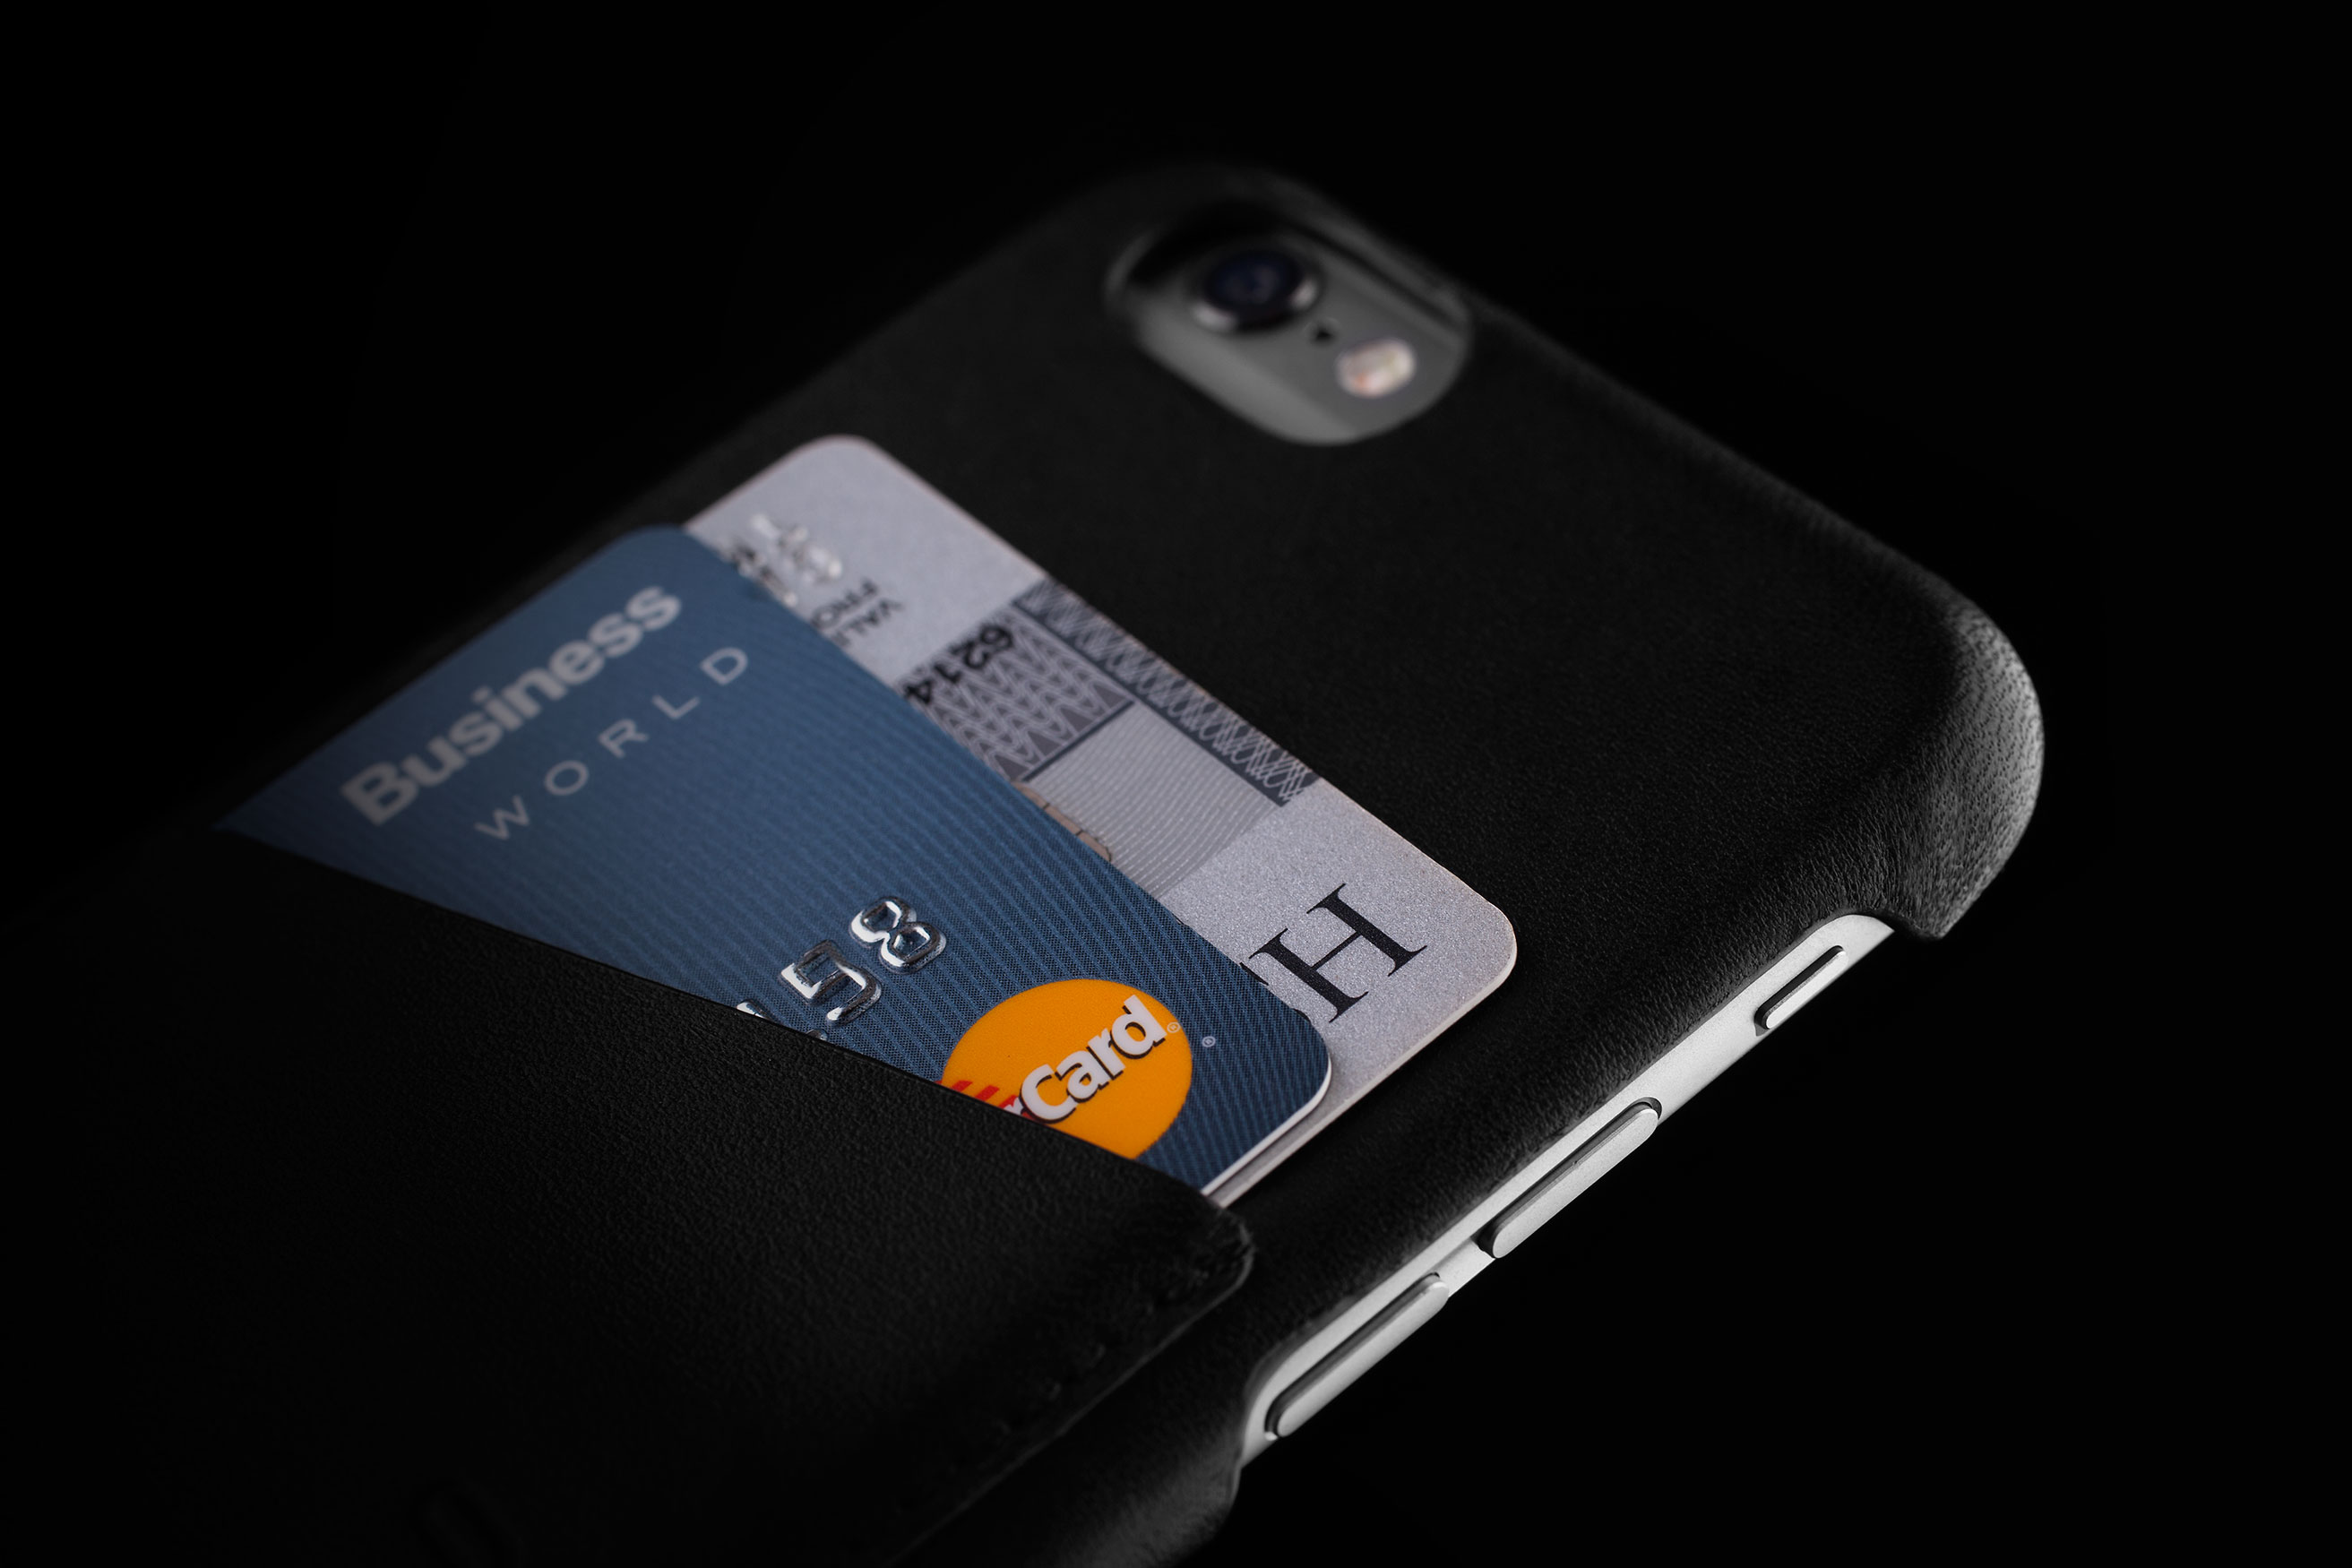 Leather-Wallet-Case-for-iPhone-6-Black-Lifestyle-009